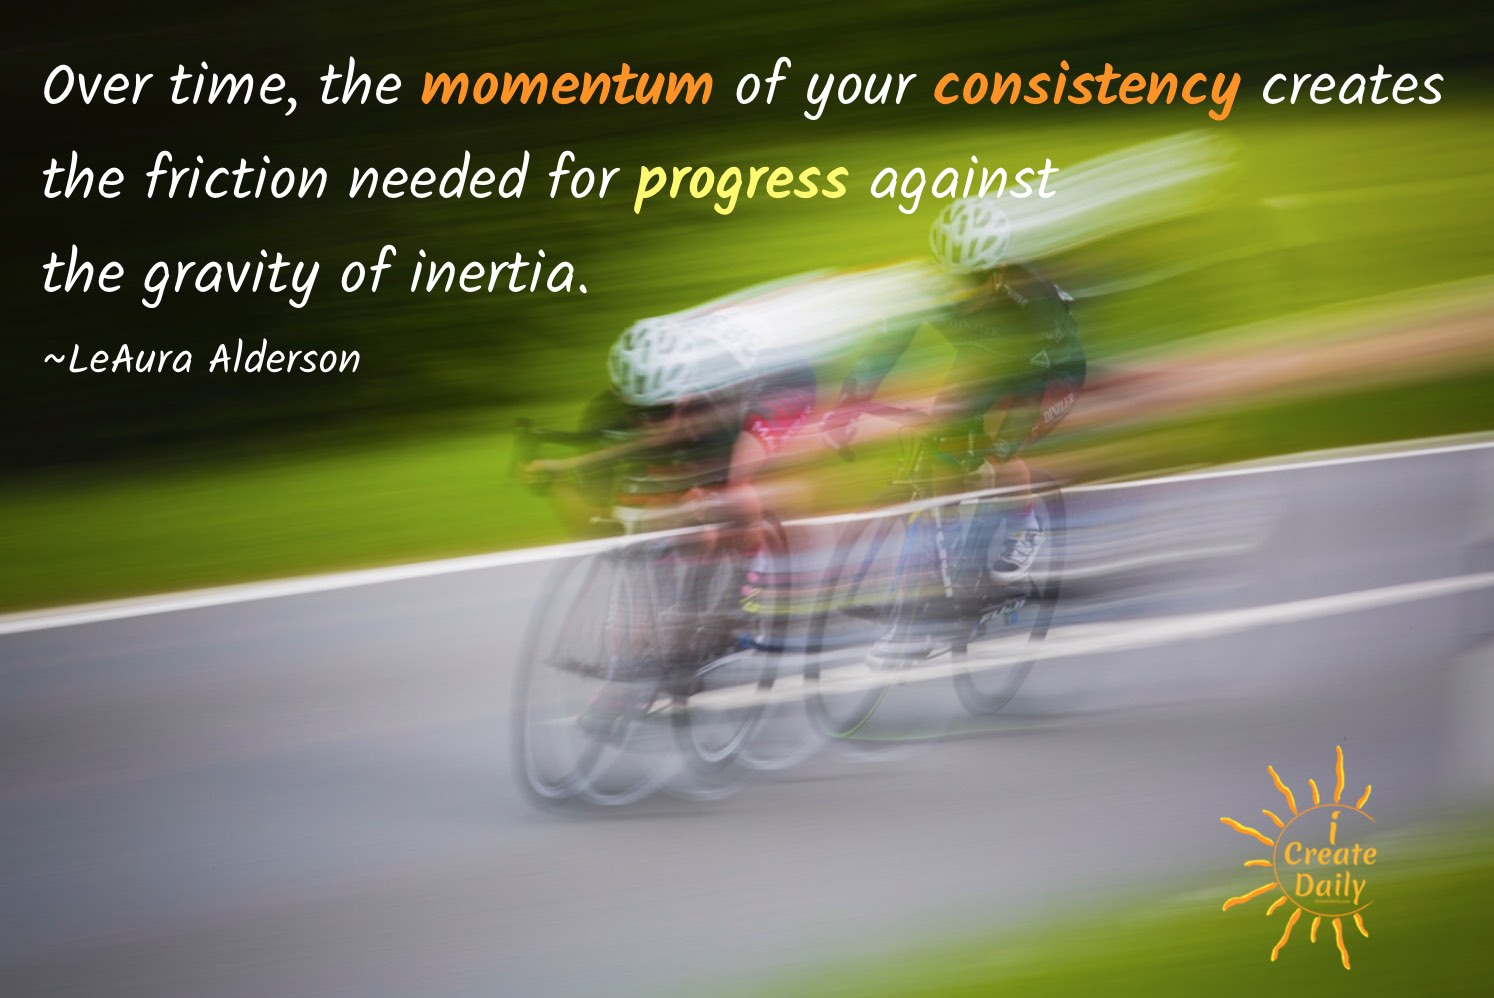 """Over time, the momentum of your consistency creates the friction needed for progress against the gravity of inertia."" ~LeAura Alderson"